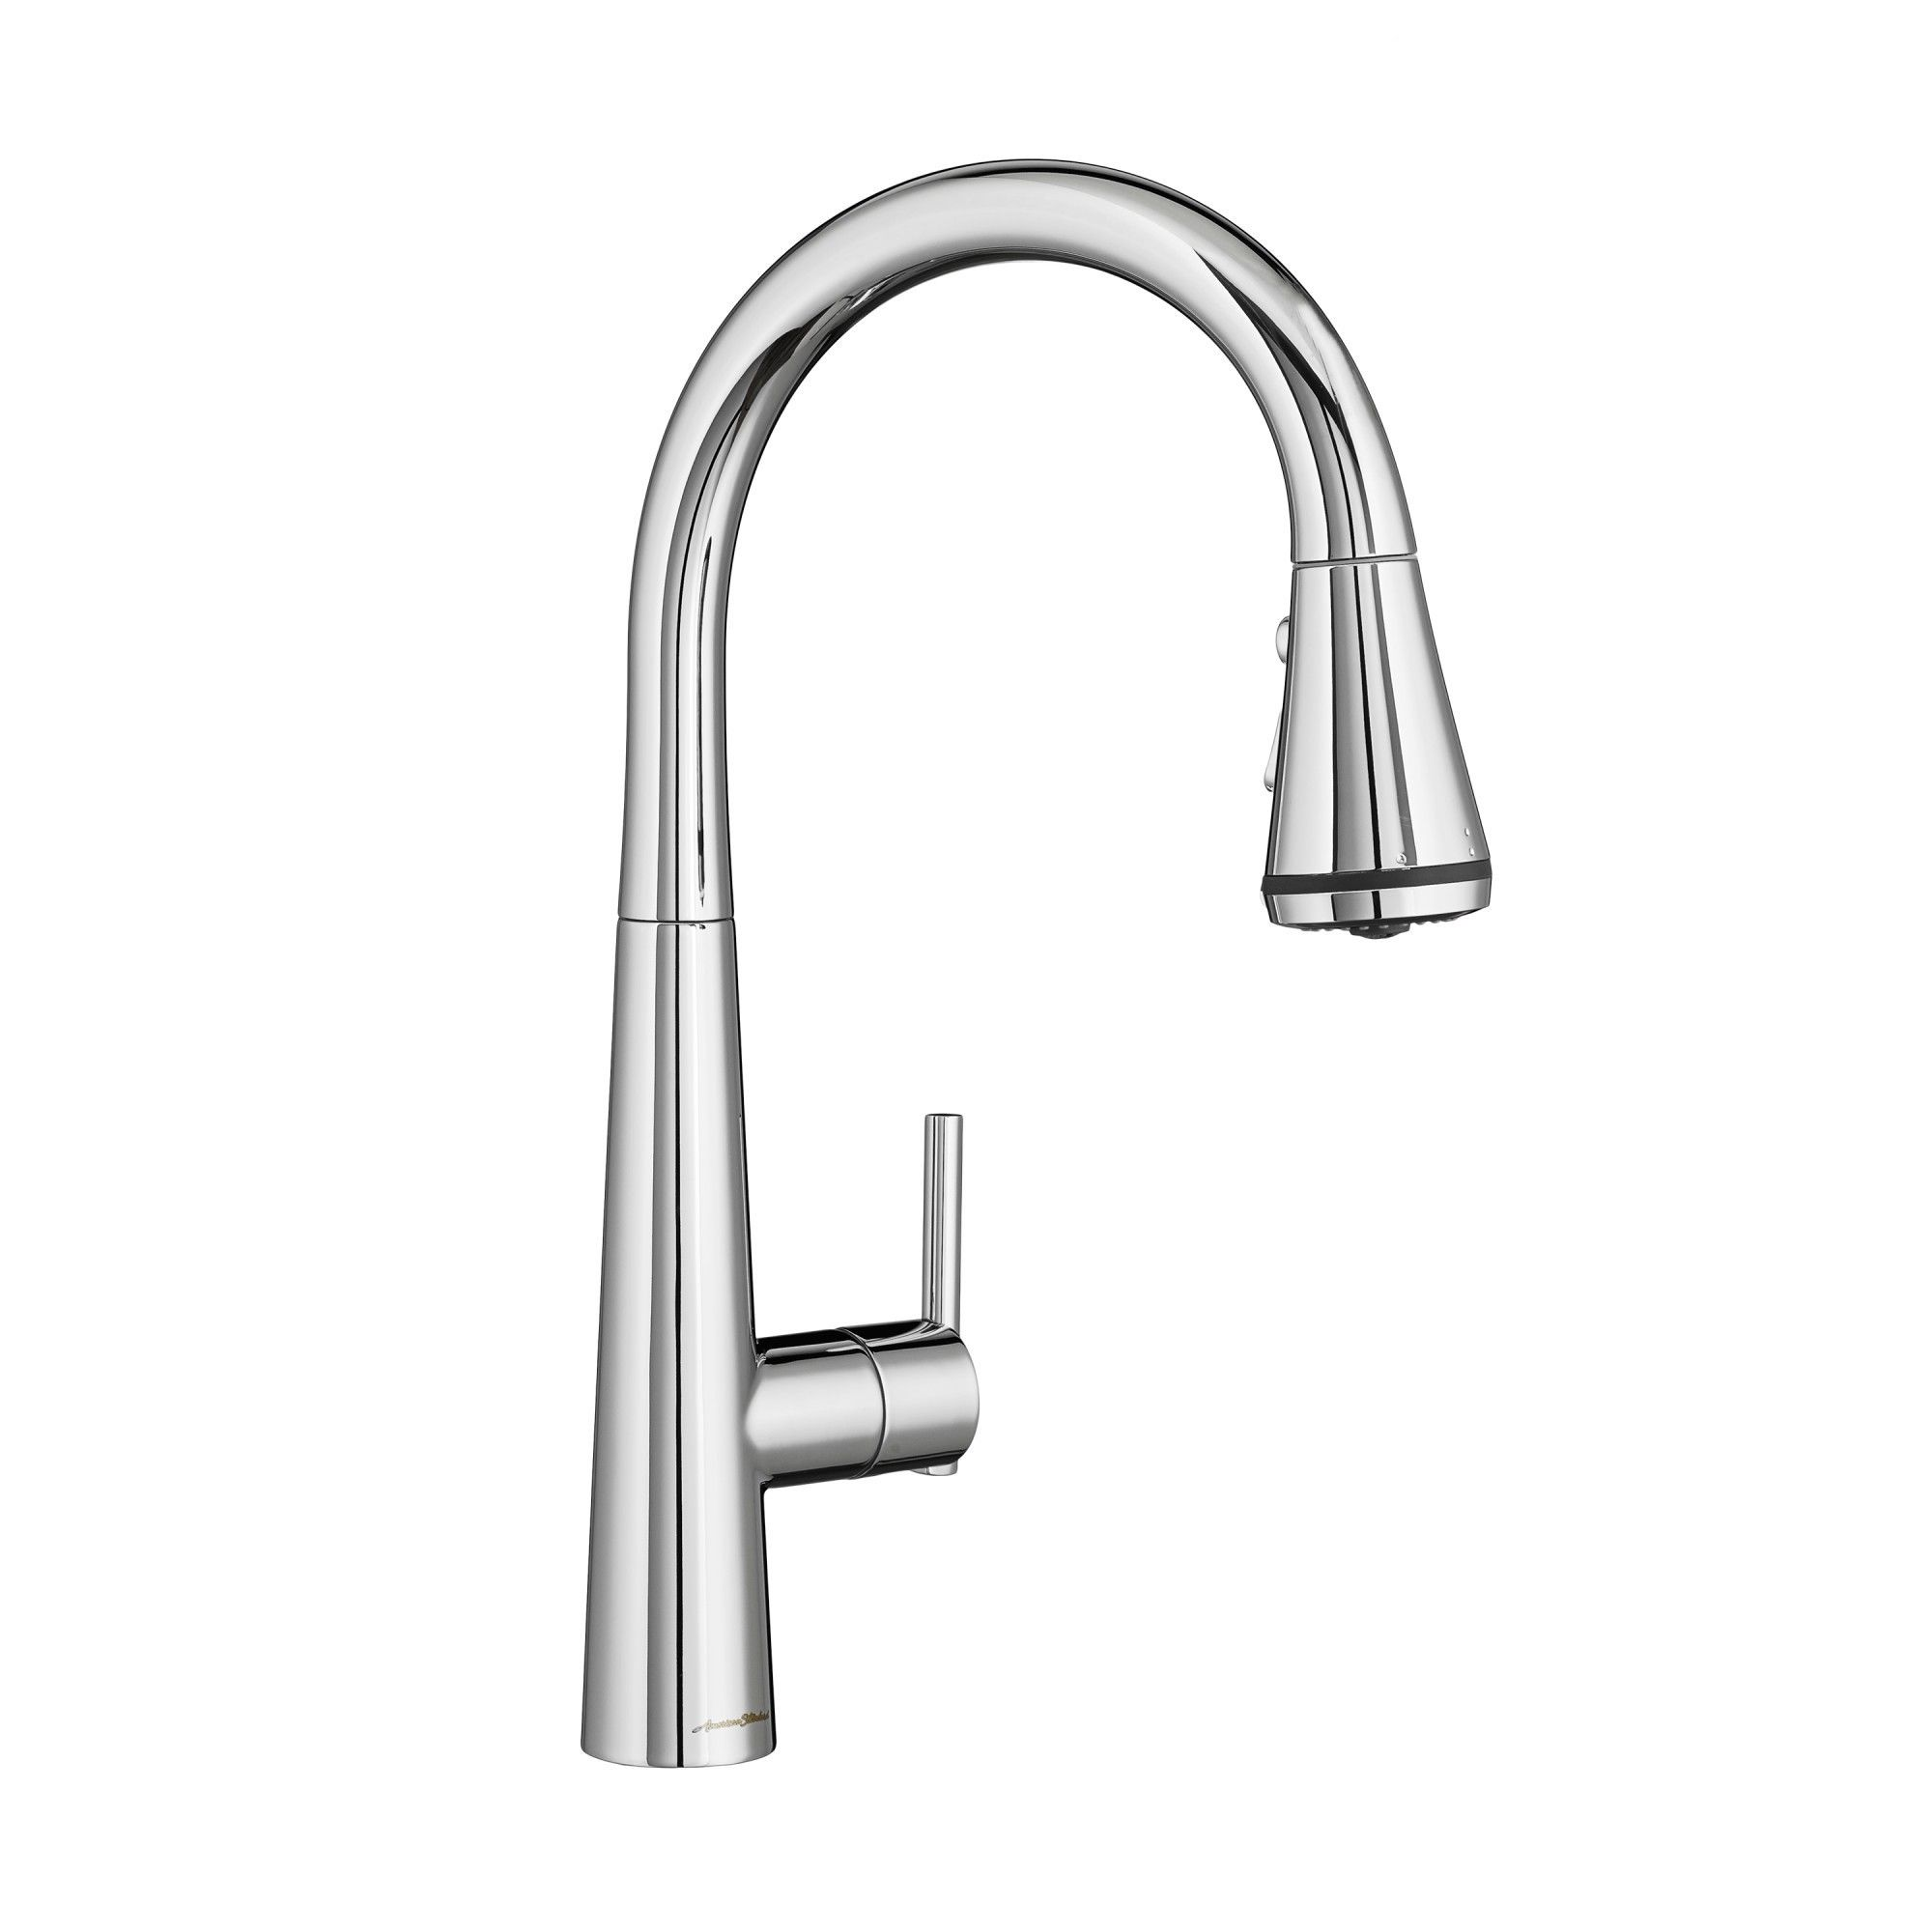 American Standard 4932 300 Edgewater Pull Out Spray Kitchen Faucet